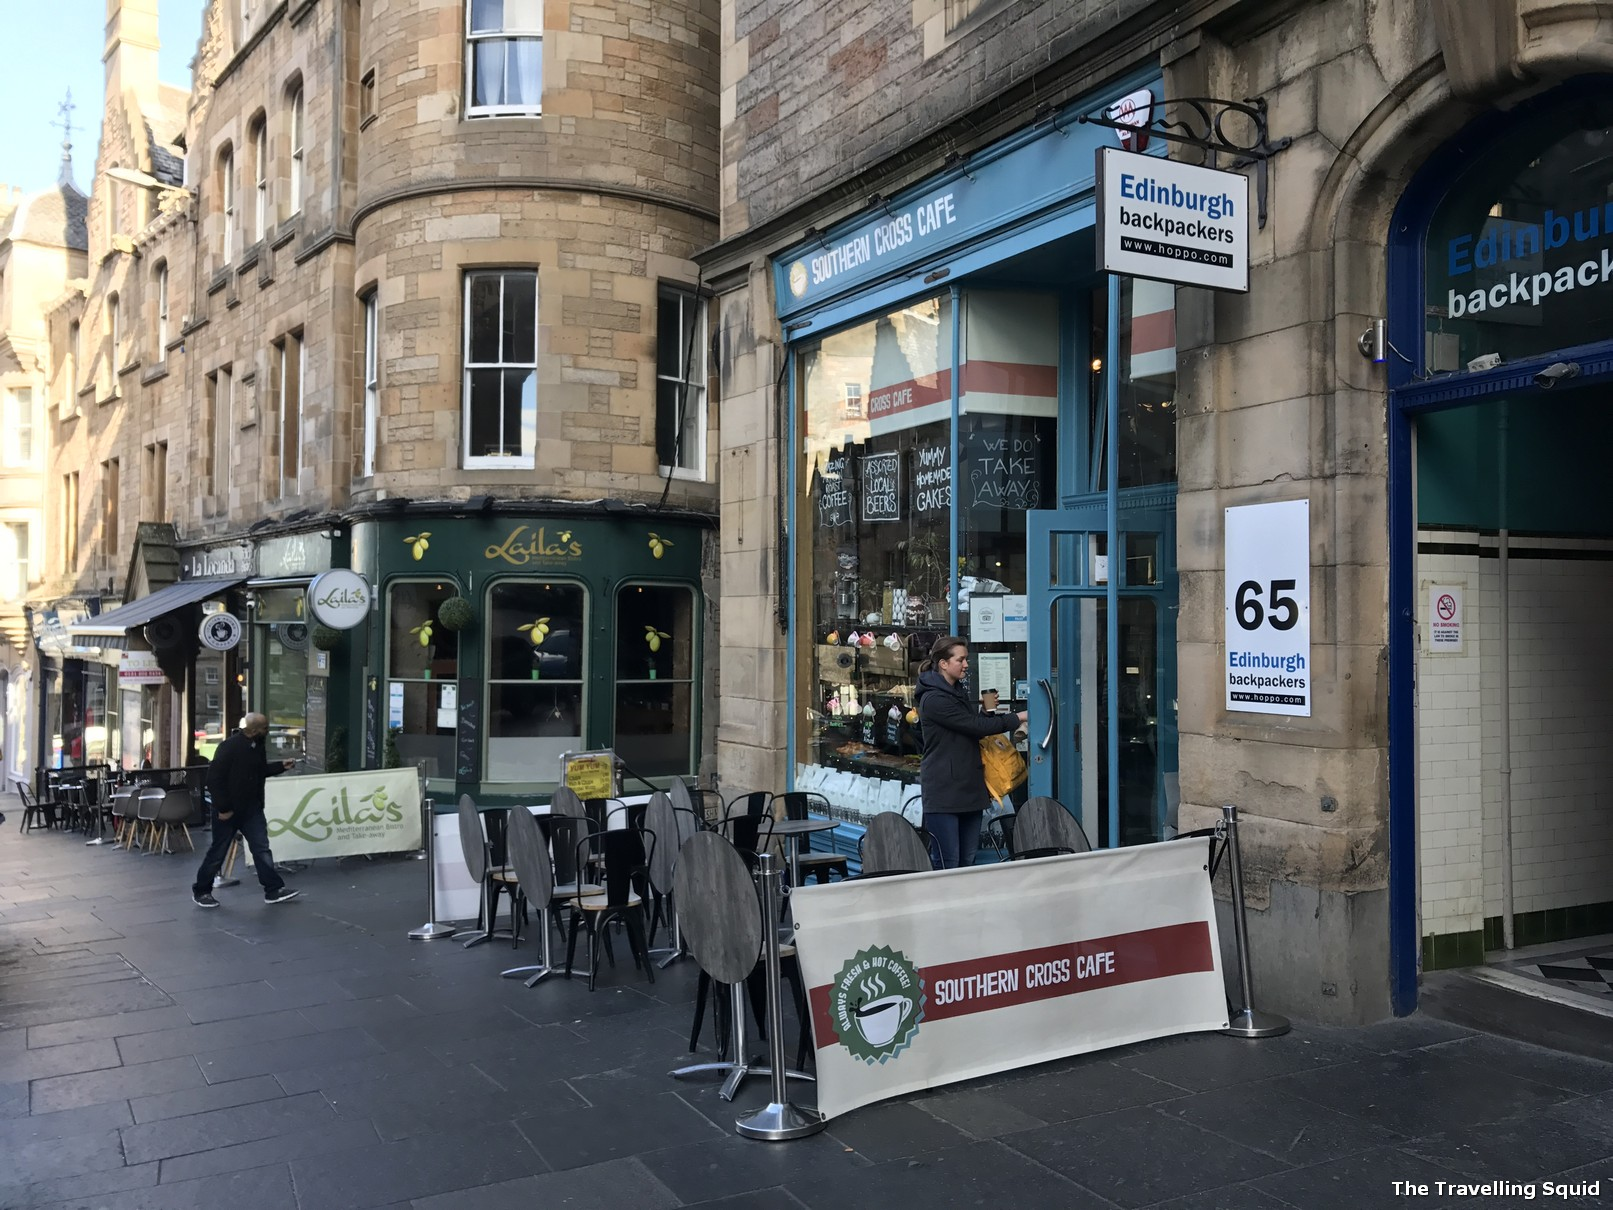 edinburgh southern cross cafe breakfast